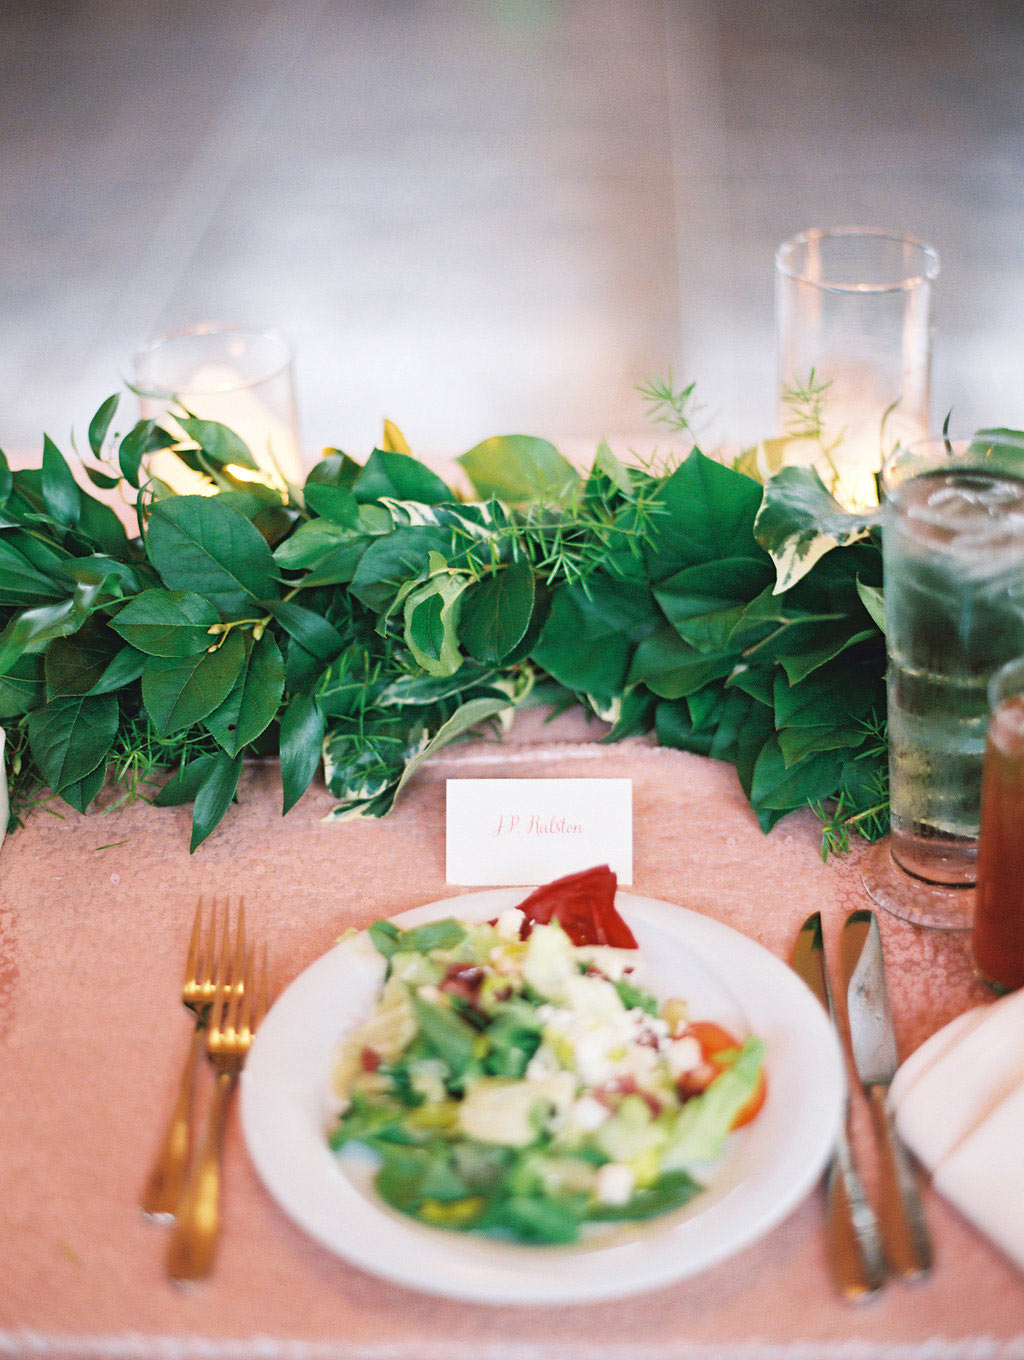 Green garland table runner and wedding place setting with salad